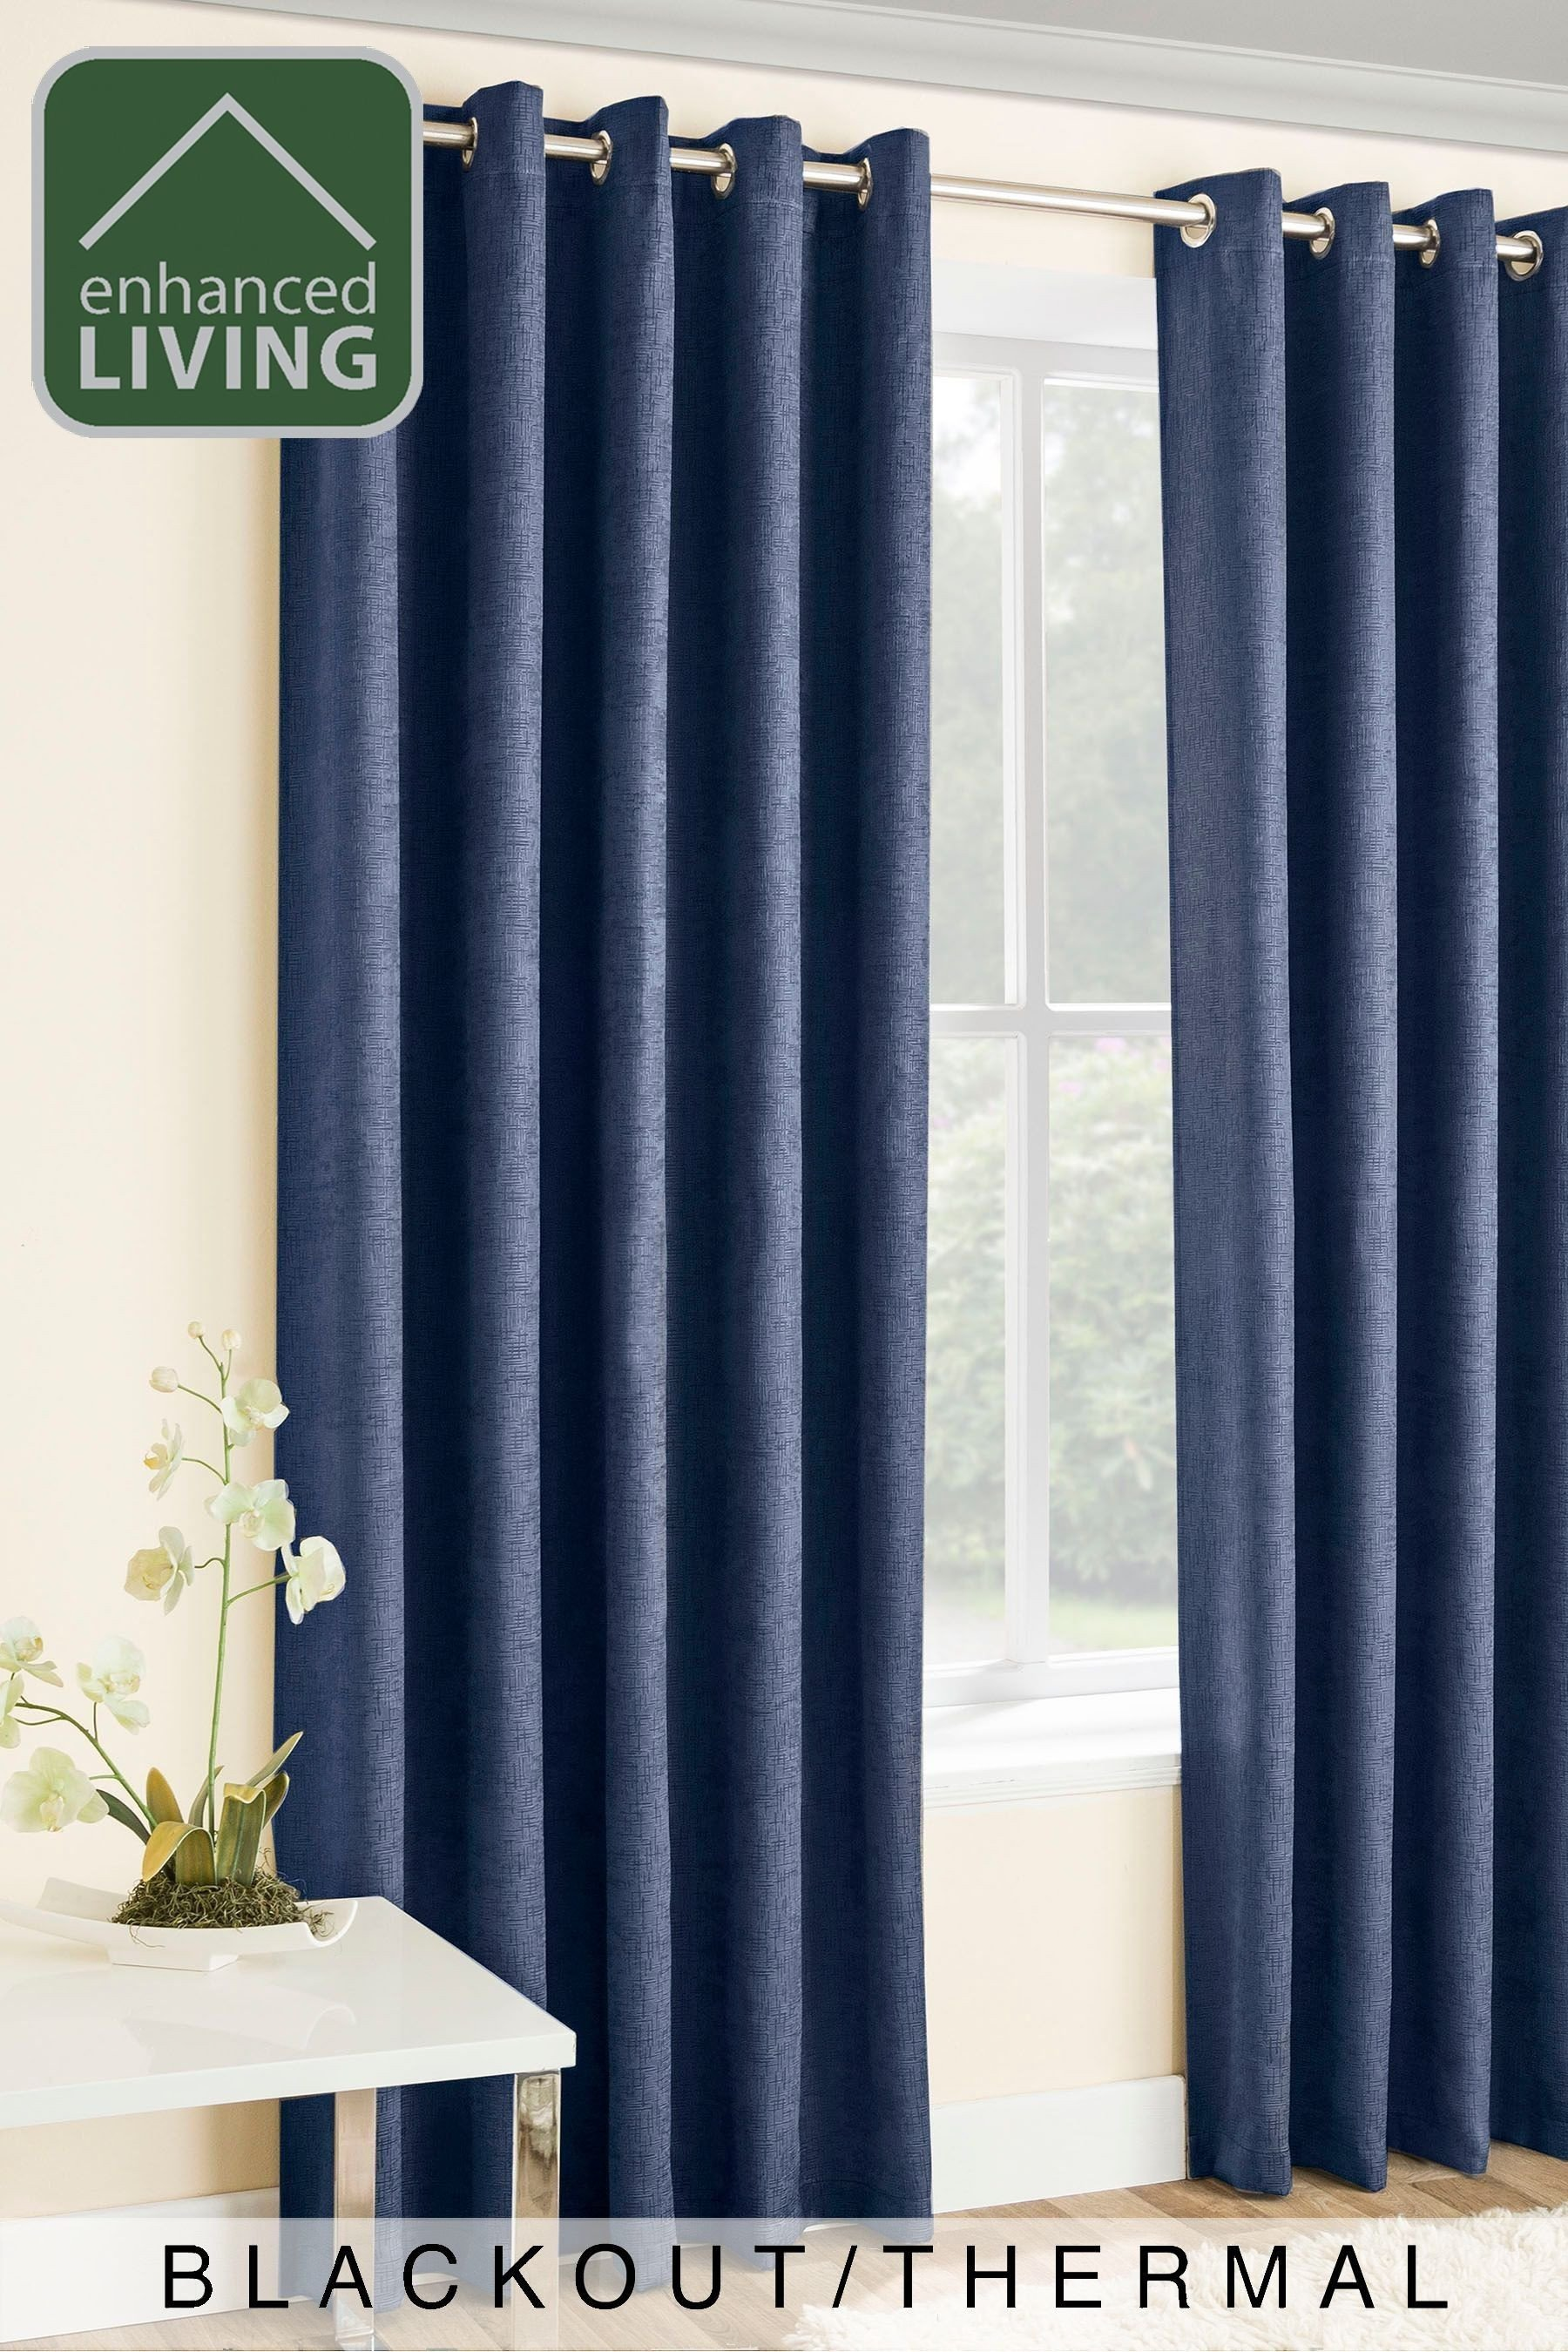 Blackout Drapes for Bedroom Beautiful Enhanced Living Lined thermal Blackout Curtains